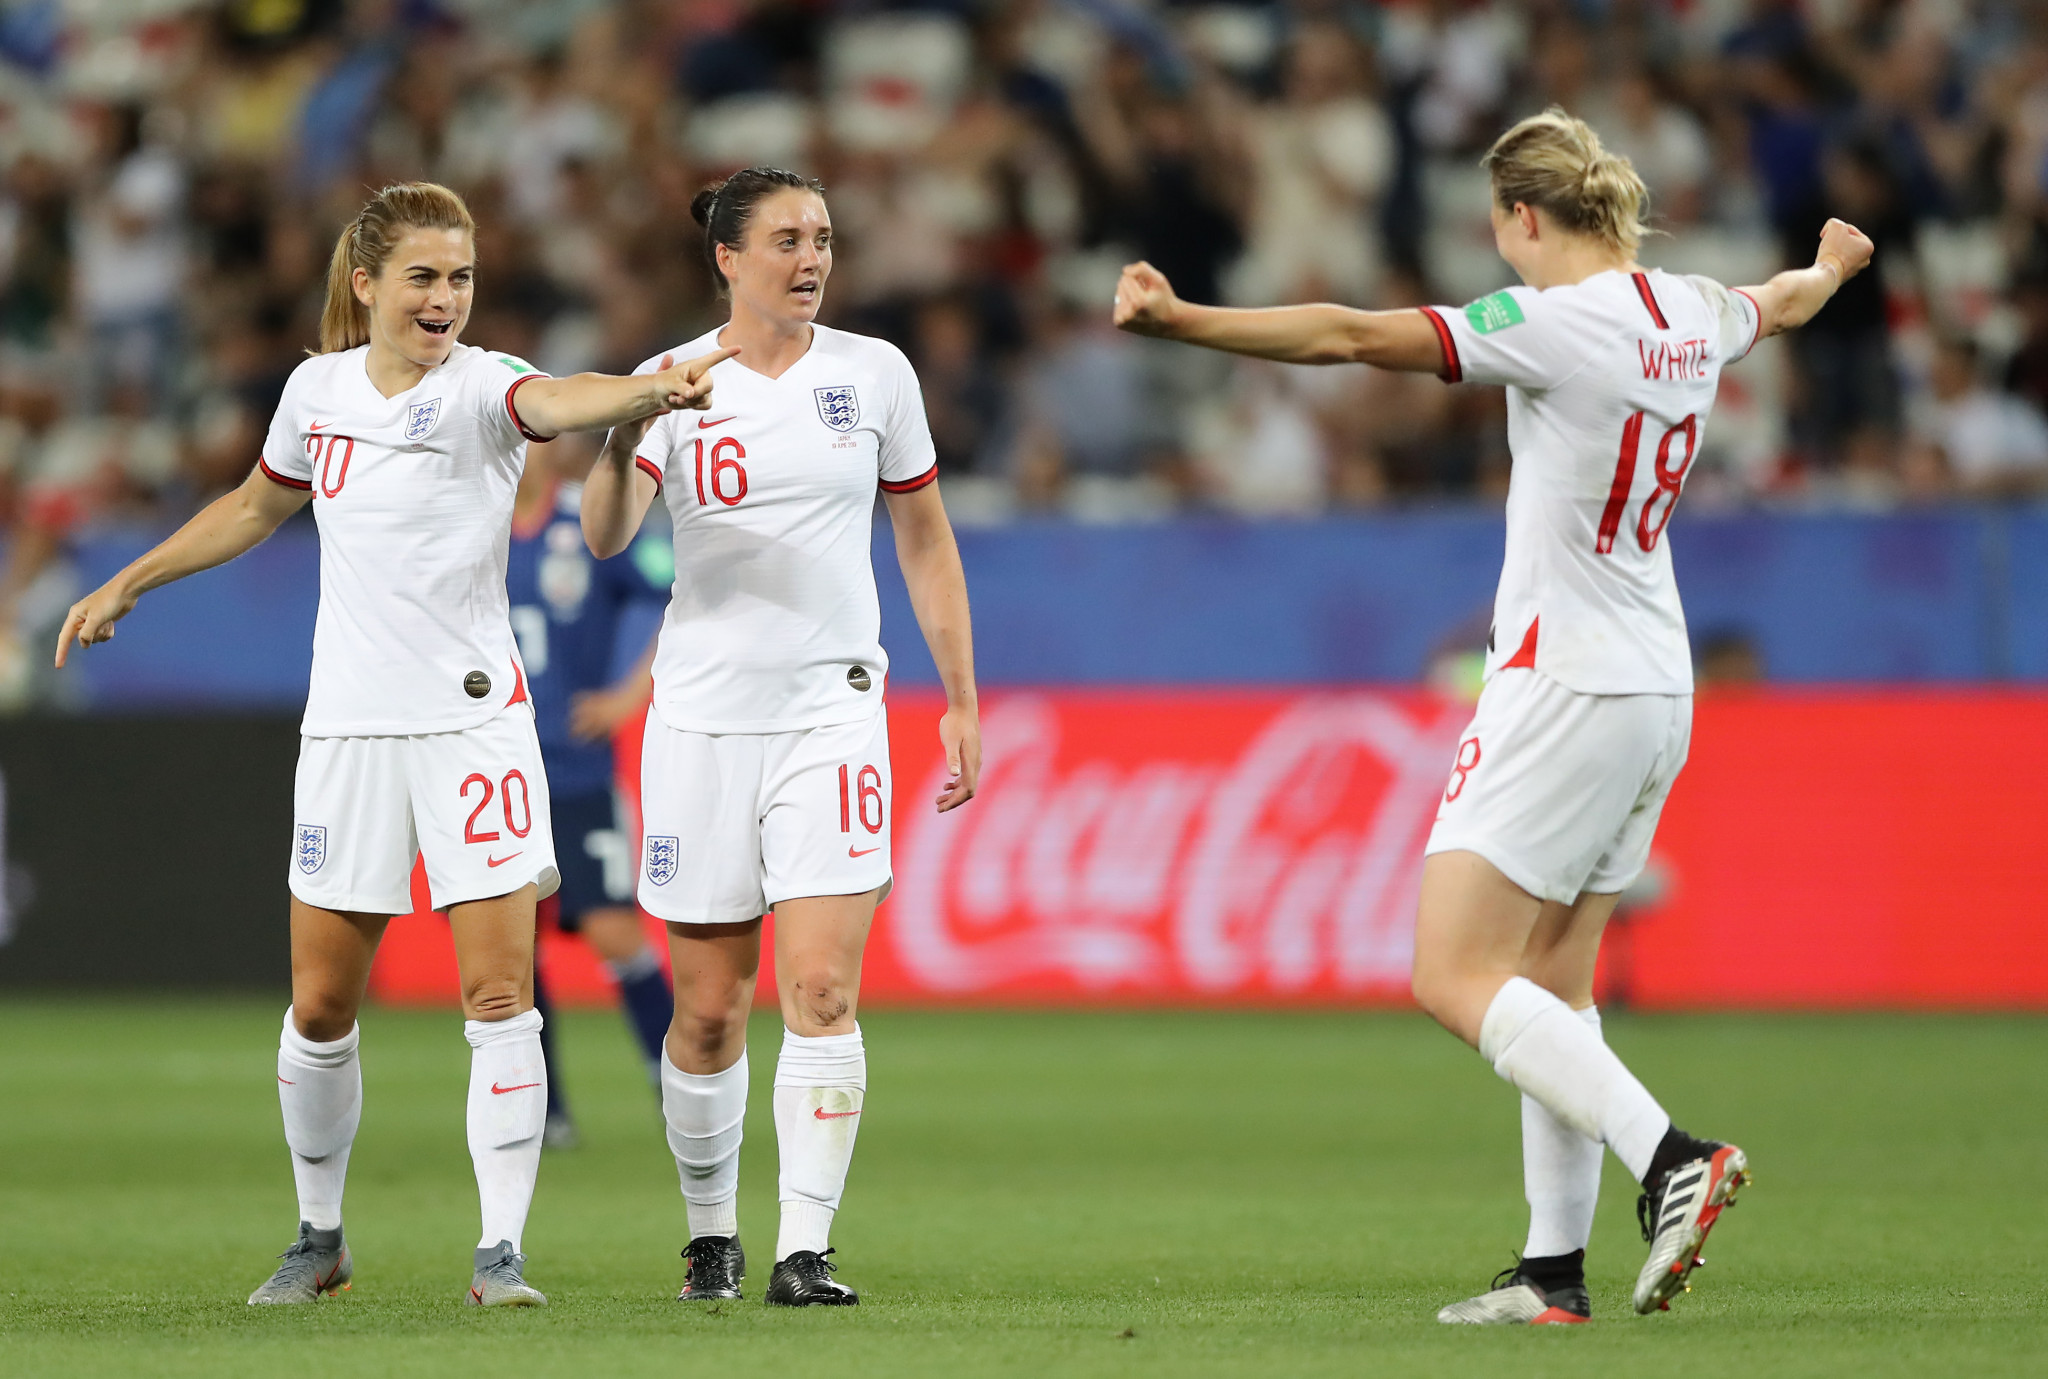 Her second goal secured a 2-0 victory for England ©Getty Images